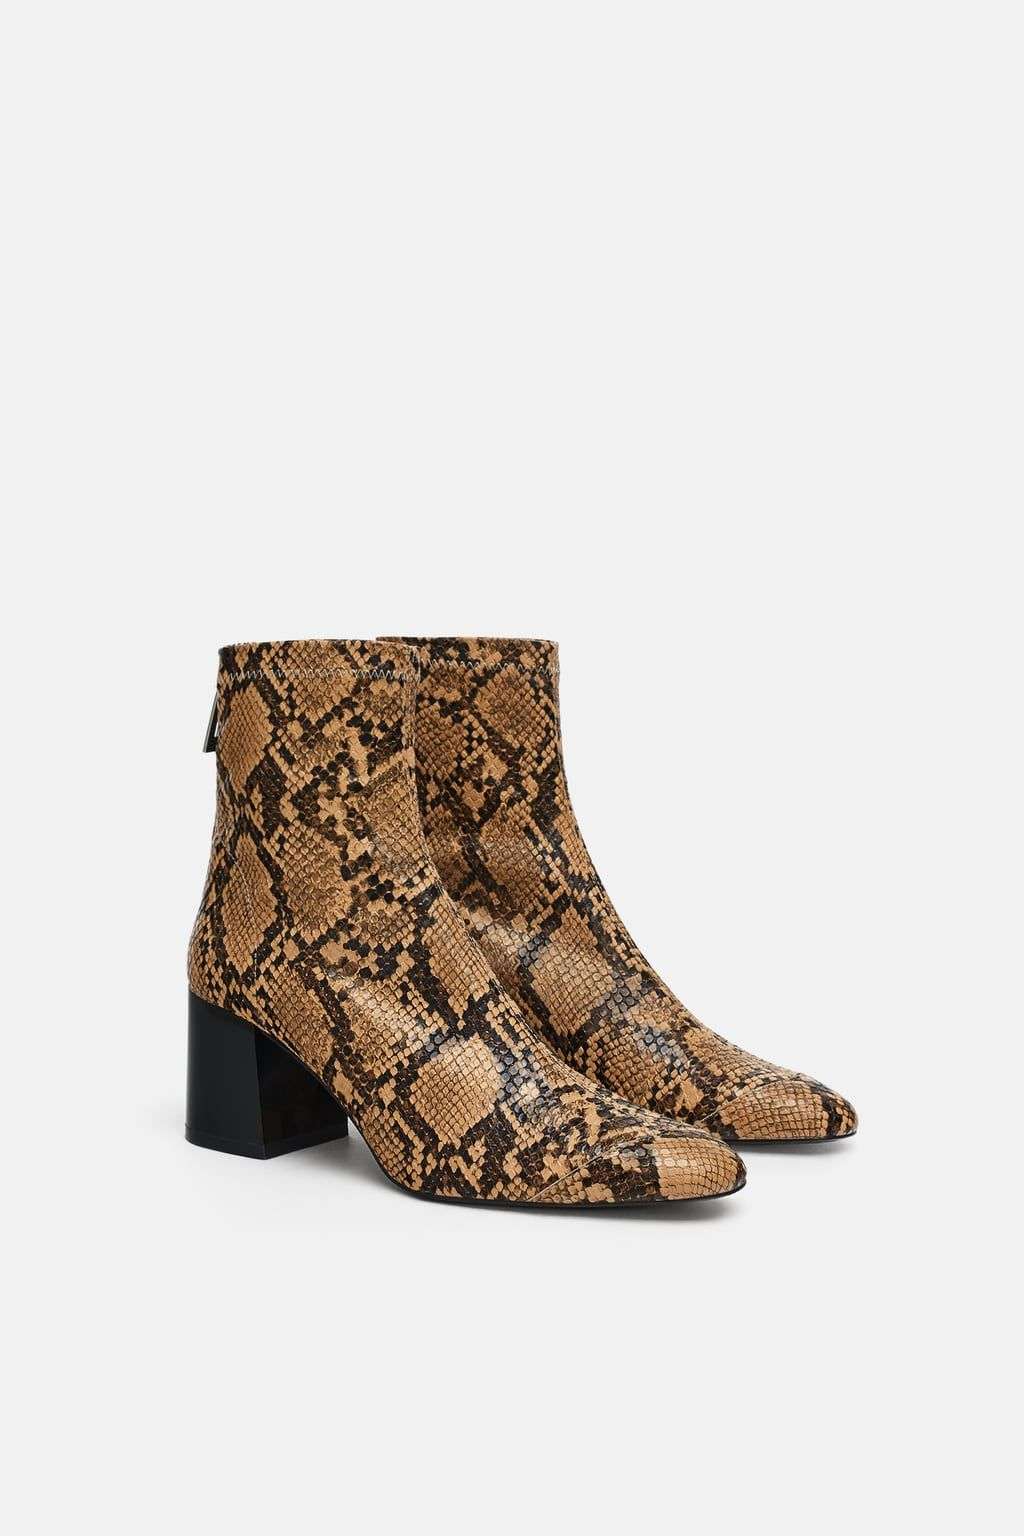 5ca0f0ad5920da Image 4 of HEELED ANIMAL PRINT ANKLE BOOTS from Zara | Shoes! in ...